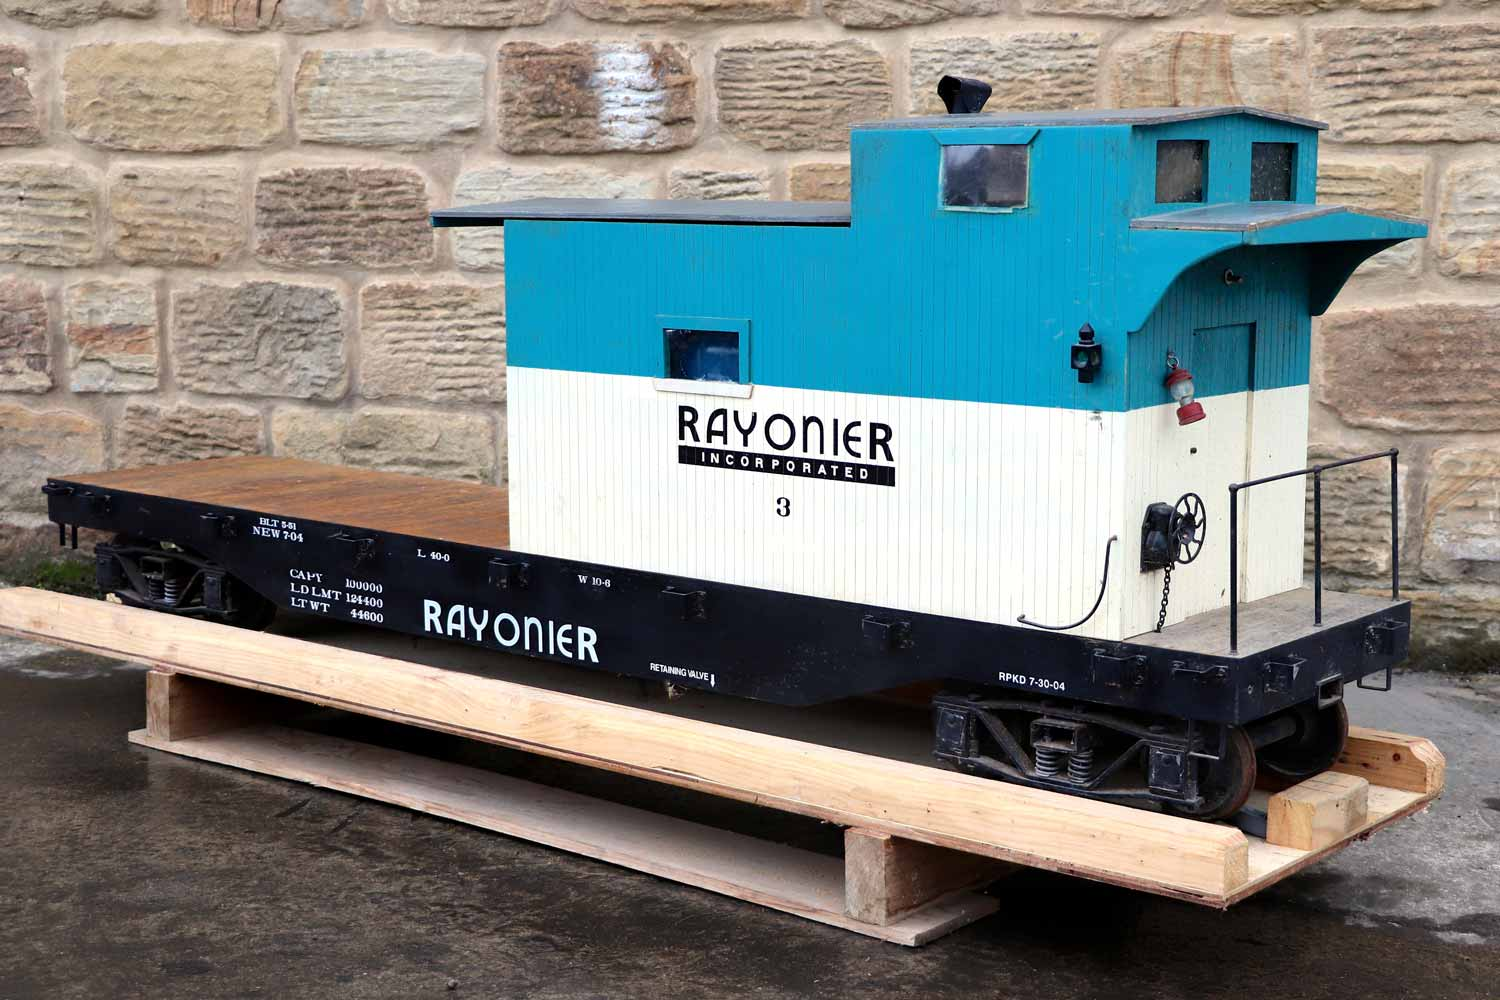 test 7-and-a-quarter-inch-rayonier-hc-railroad-carriage-live-steam-for-sale-02